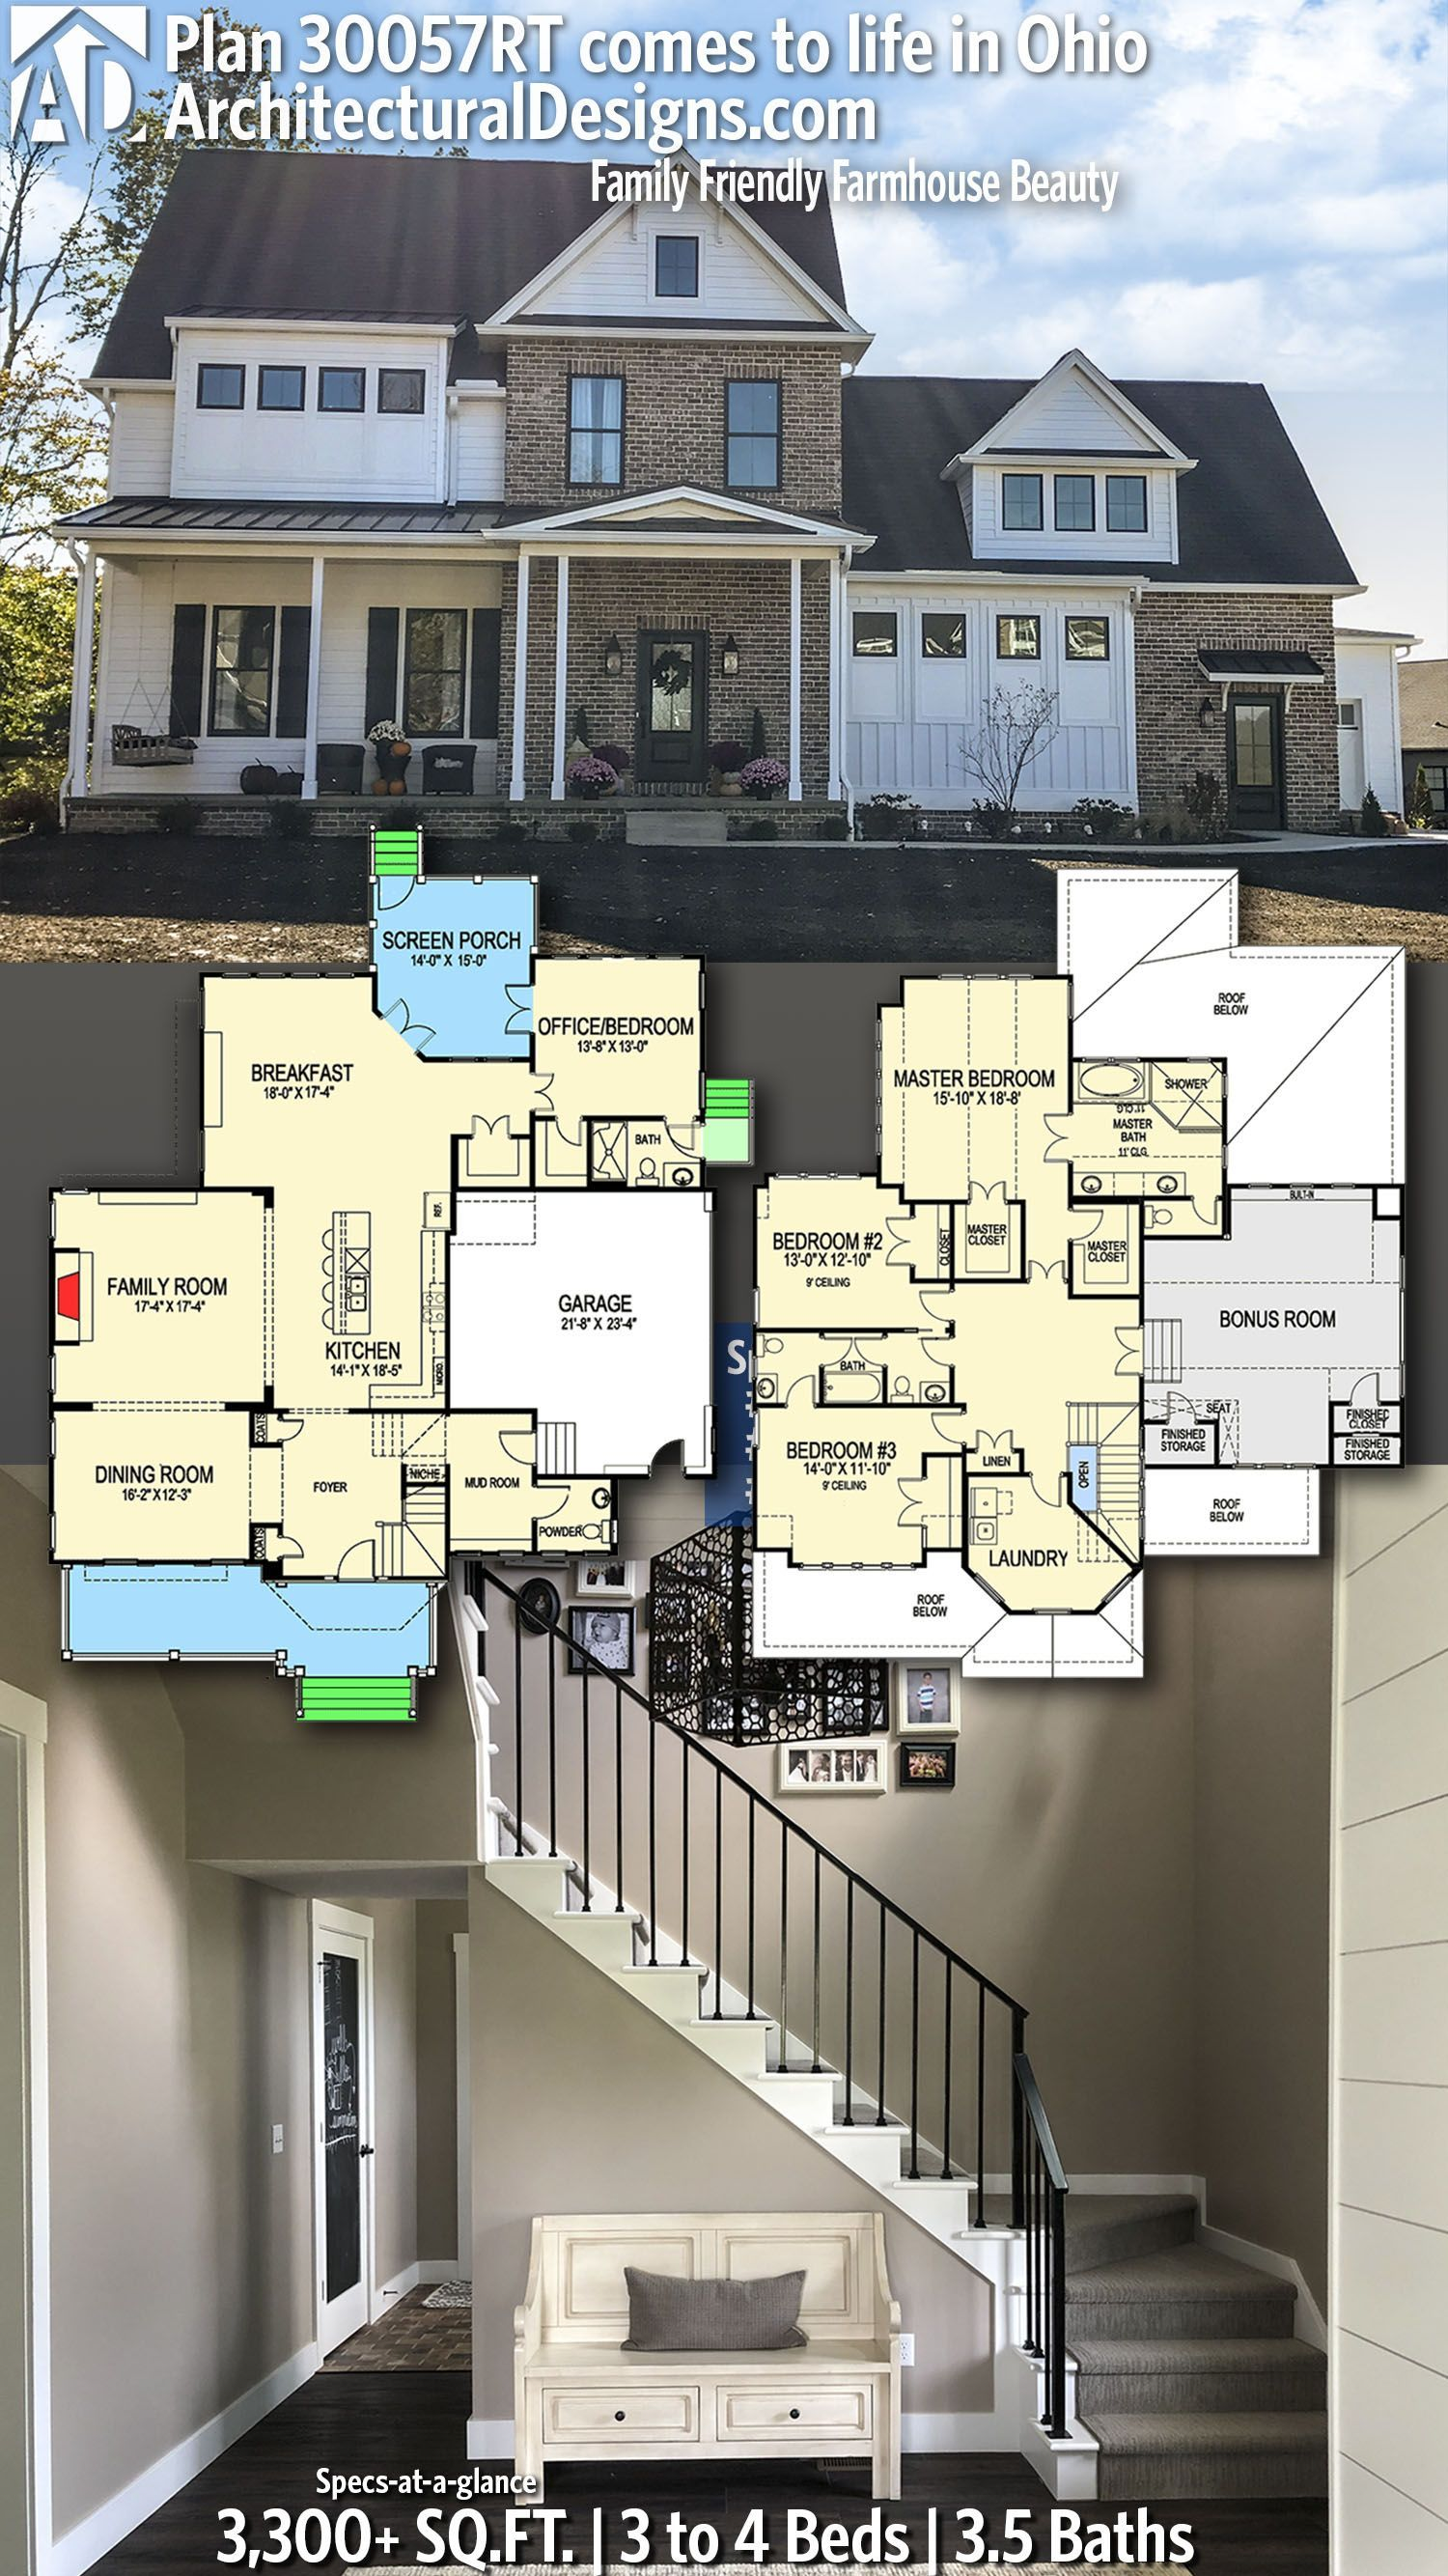 Interesting Set Of Windows In The Front In The Mud Room And Powder Bath Schlafzimmer Wohnzimmer Architectural Design House Plans House Blueprints House Plans